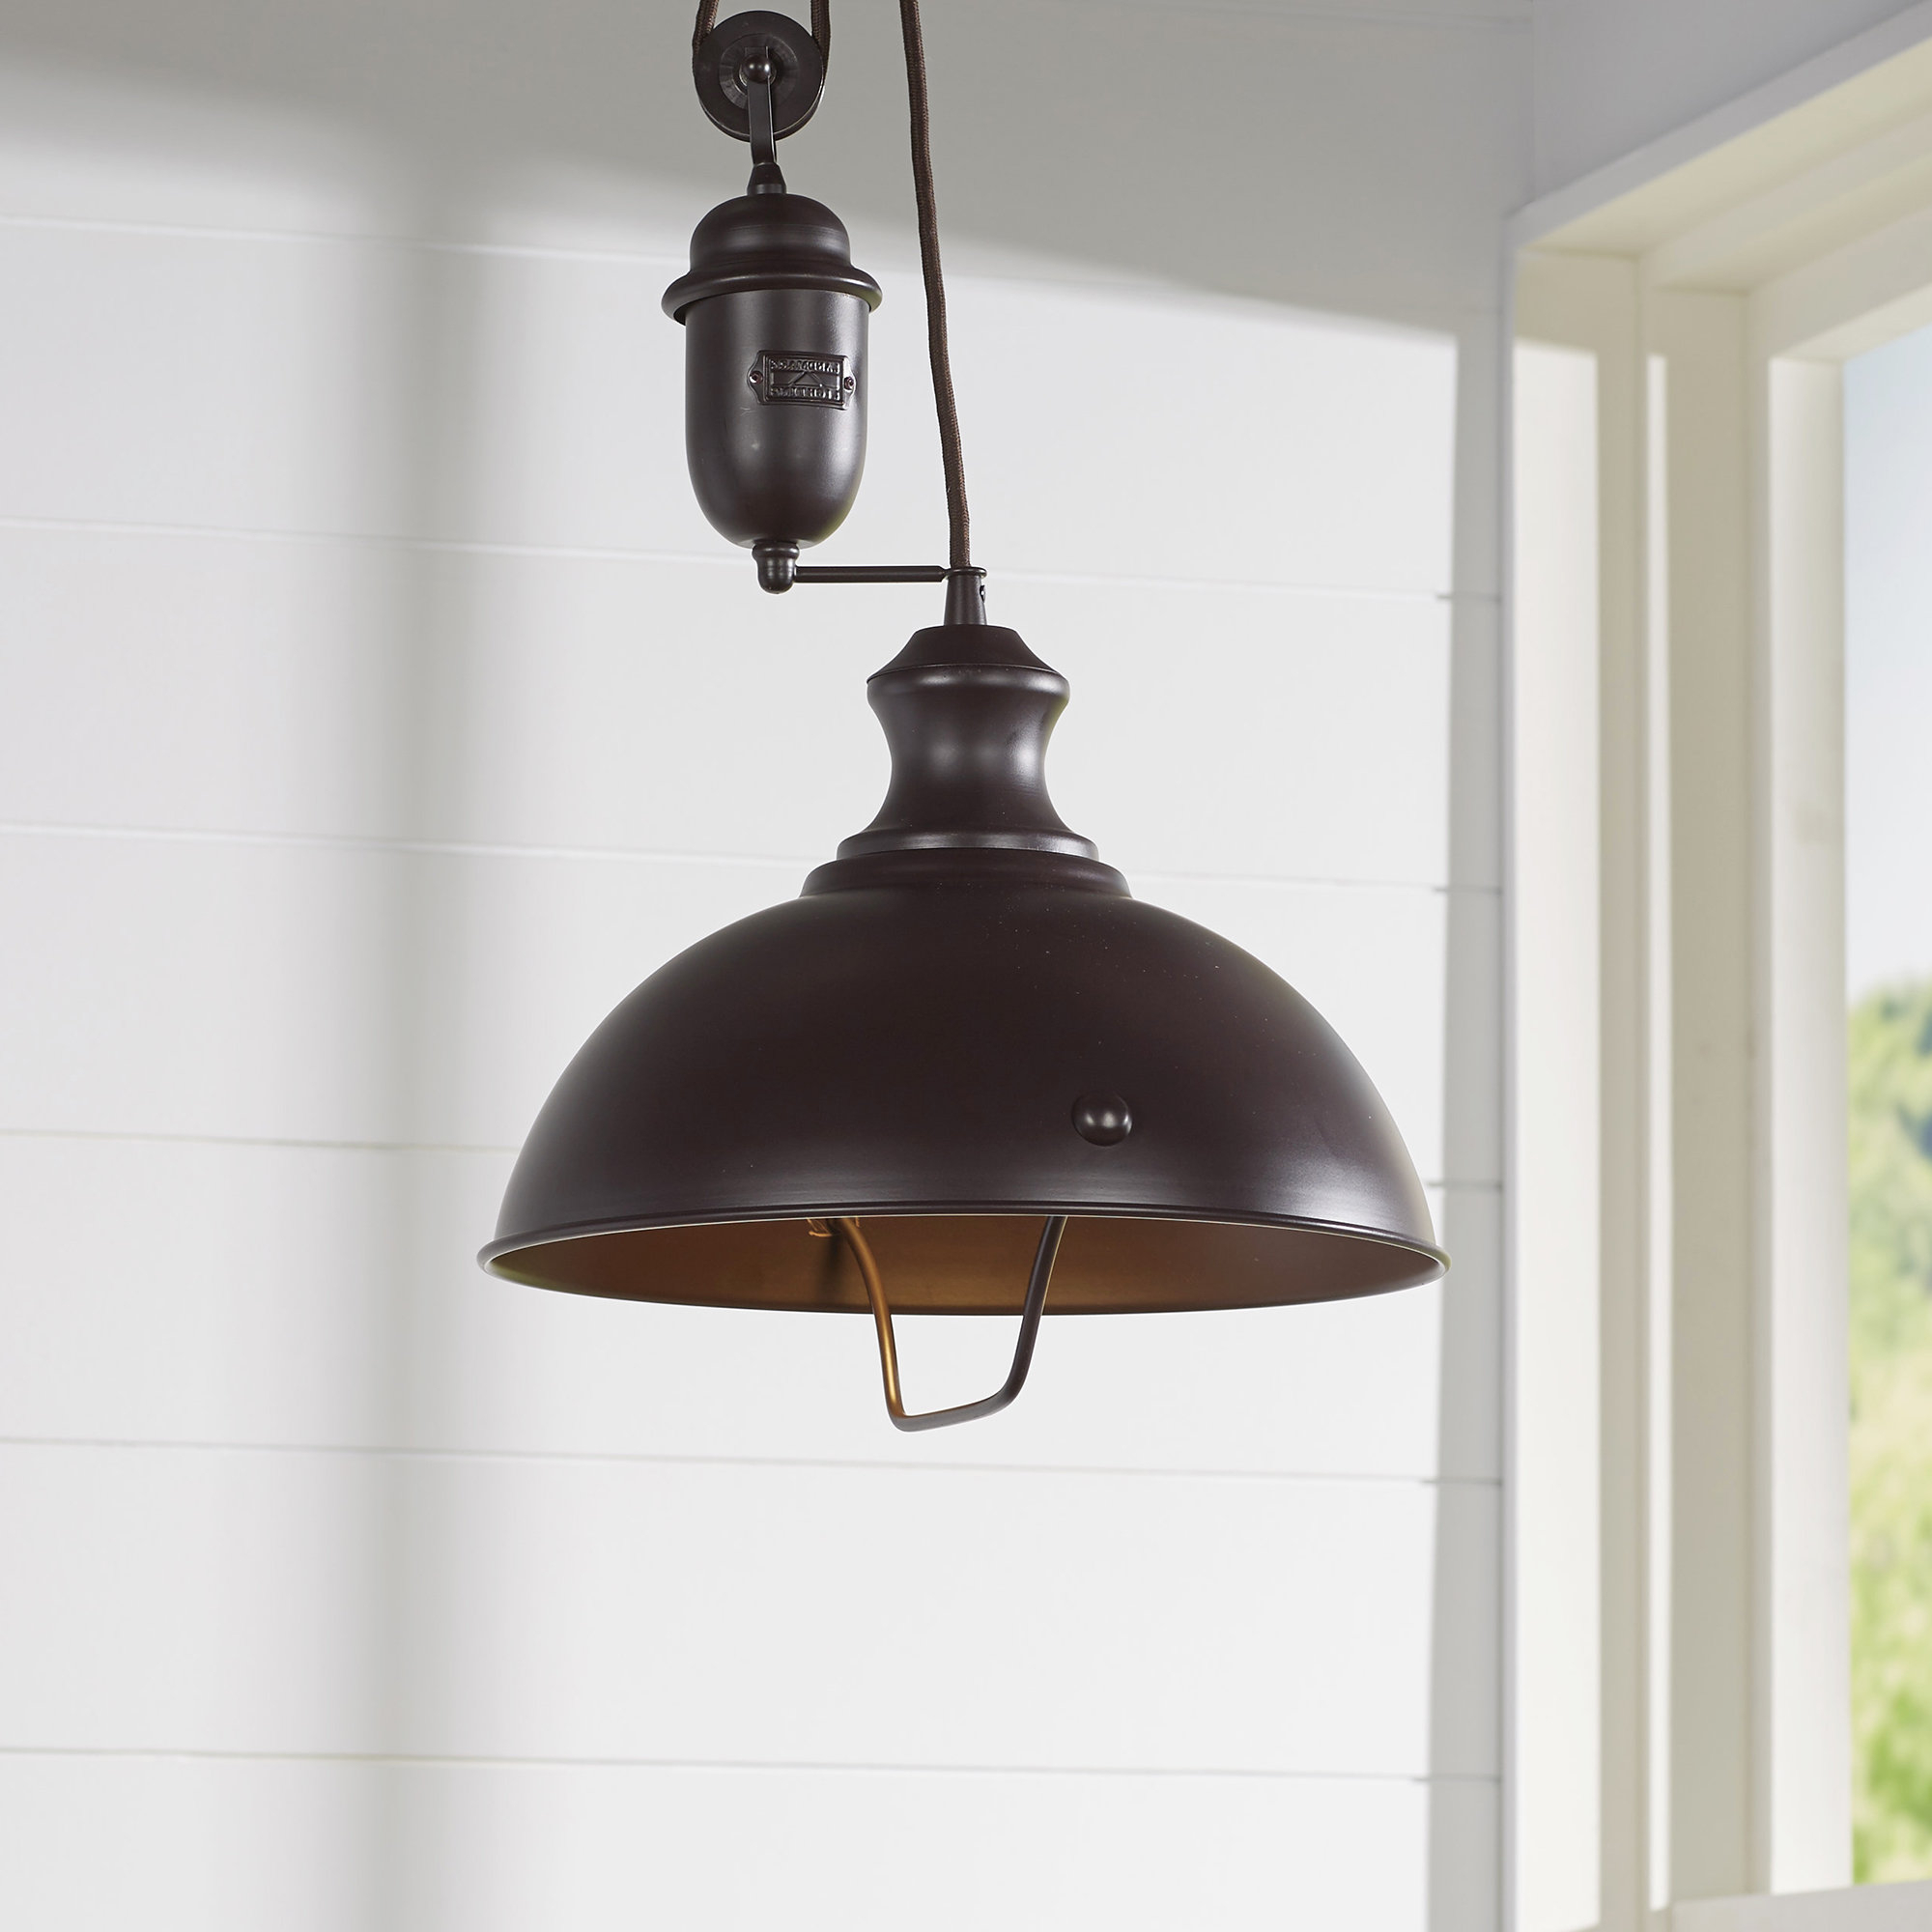 Rodriques 1 Light Bowl Pendant With Most Popular Stetson 1 Light Bowl Pendants (View 7 of 25)